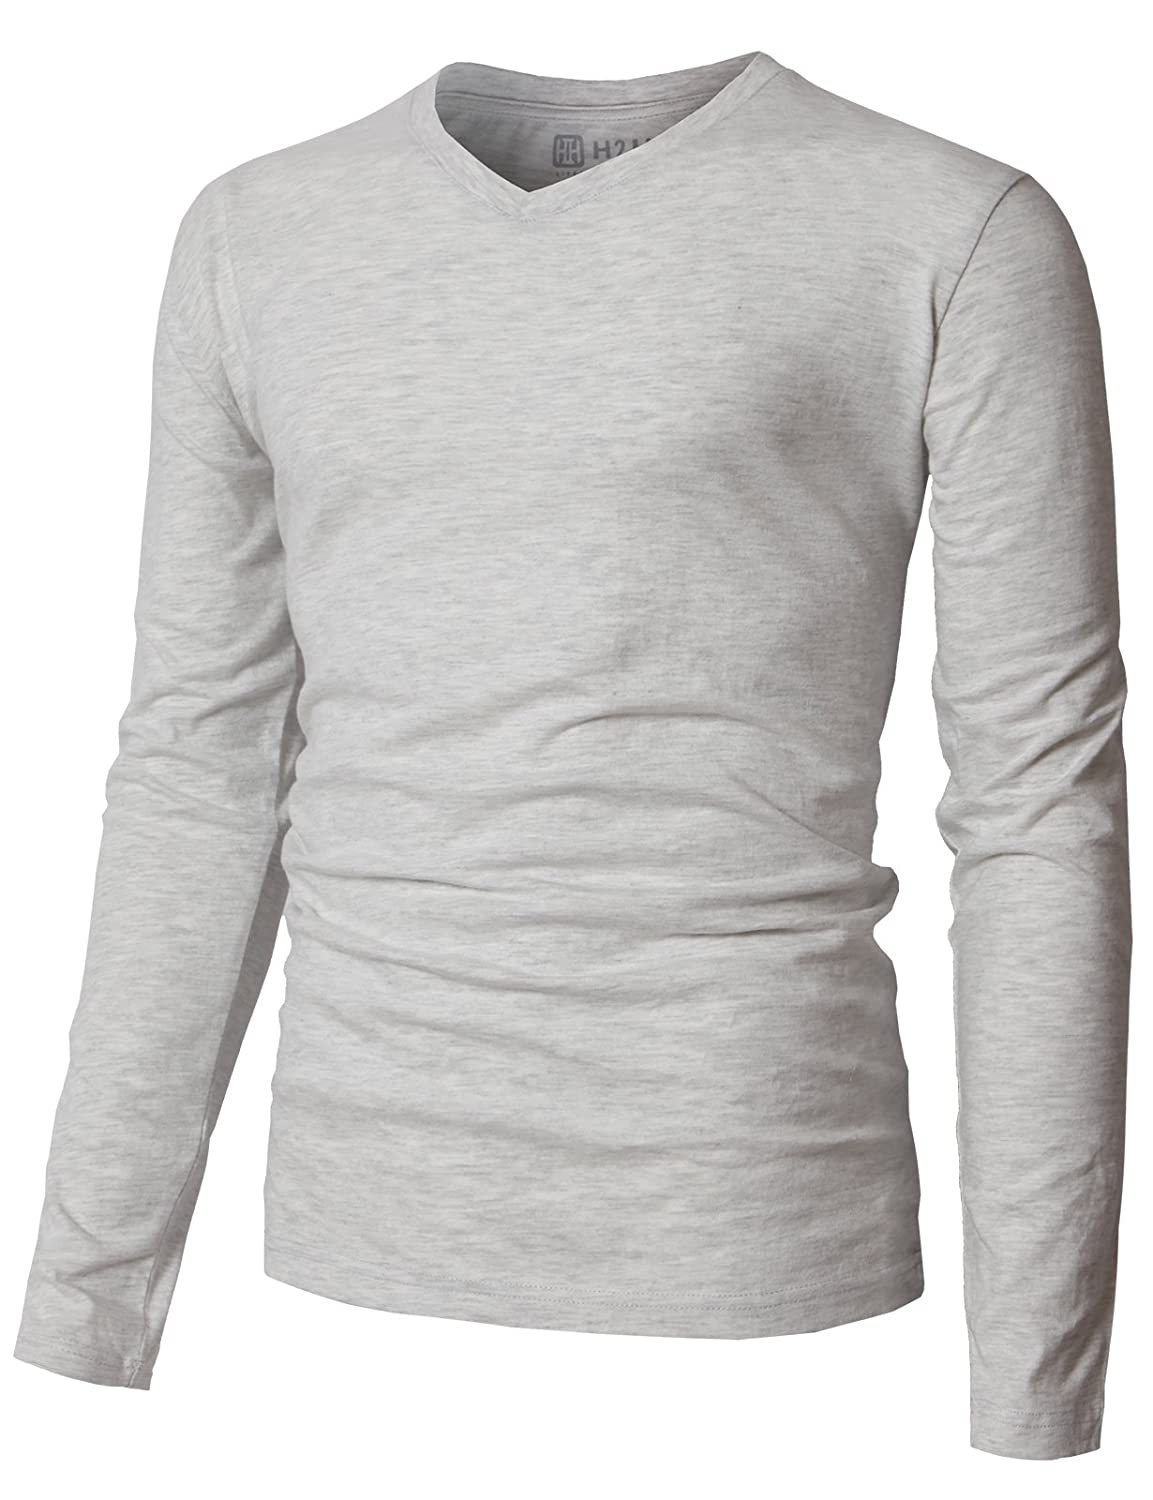 H2H Mens Casual Long Sleeve V-neck T-Shirts Premium Soft Cotton Fabric KMTTL0374